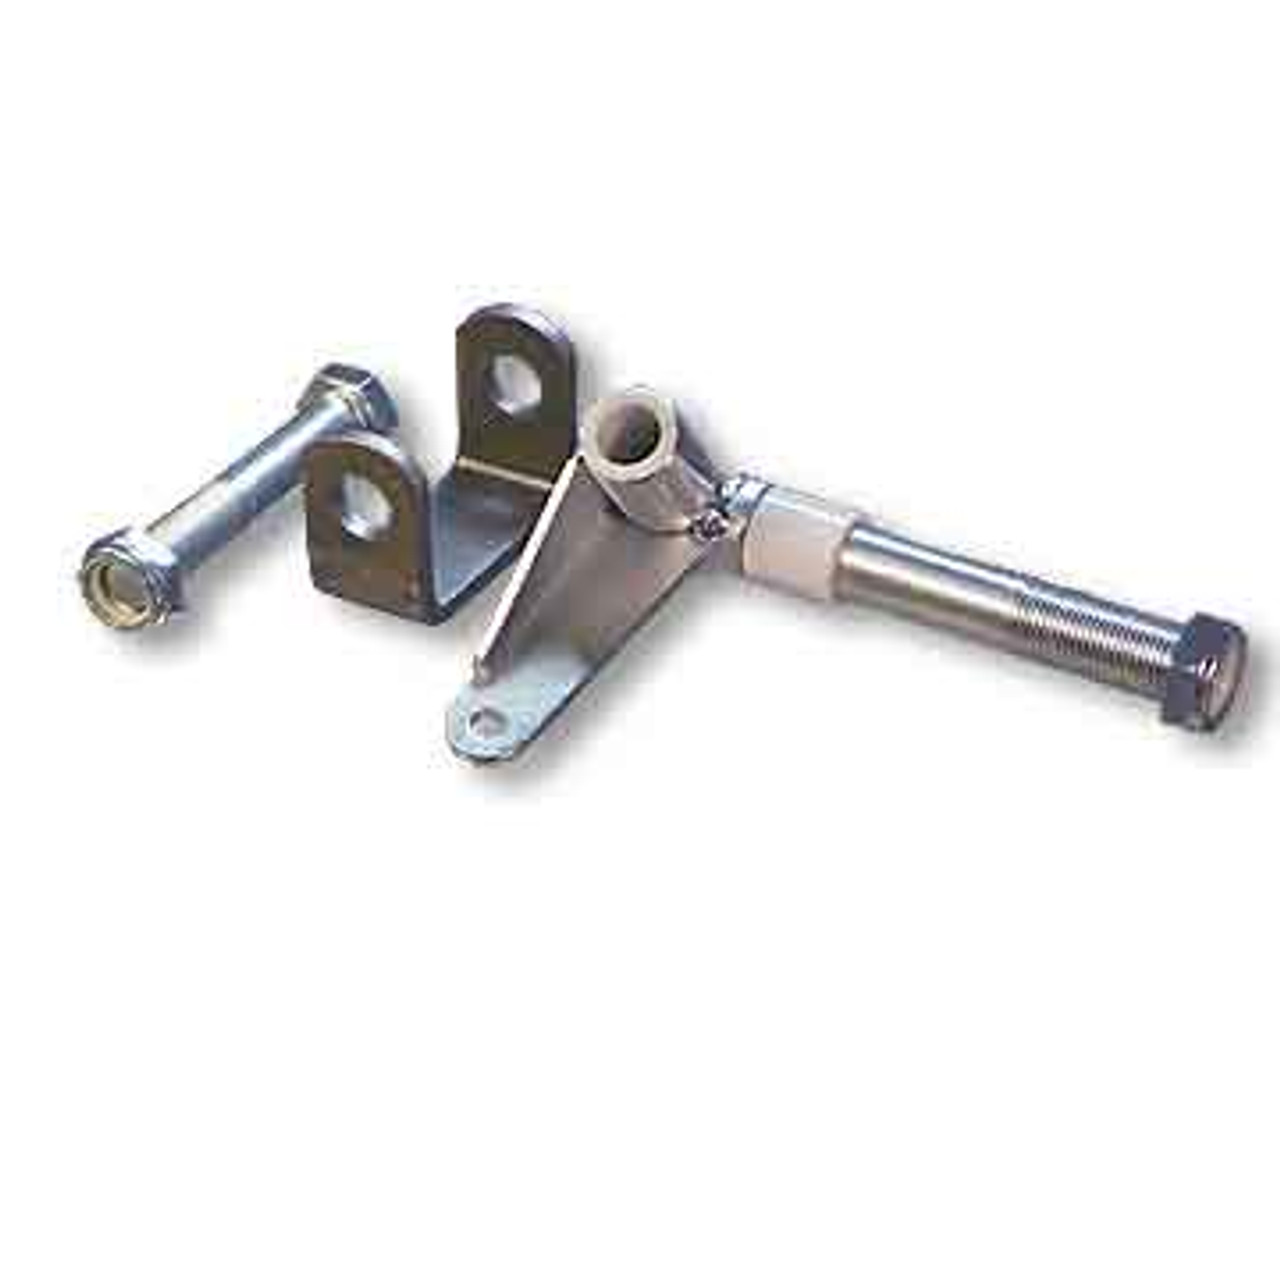 """Spindle & Bracket Set, 3/4-16 Axle X 6"""" Length, 5/8 Kingpin, Side #1, with Hardware"""